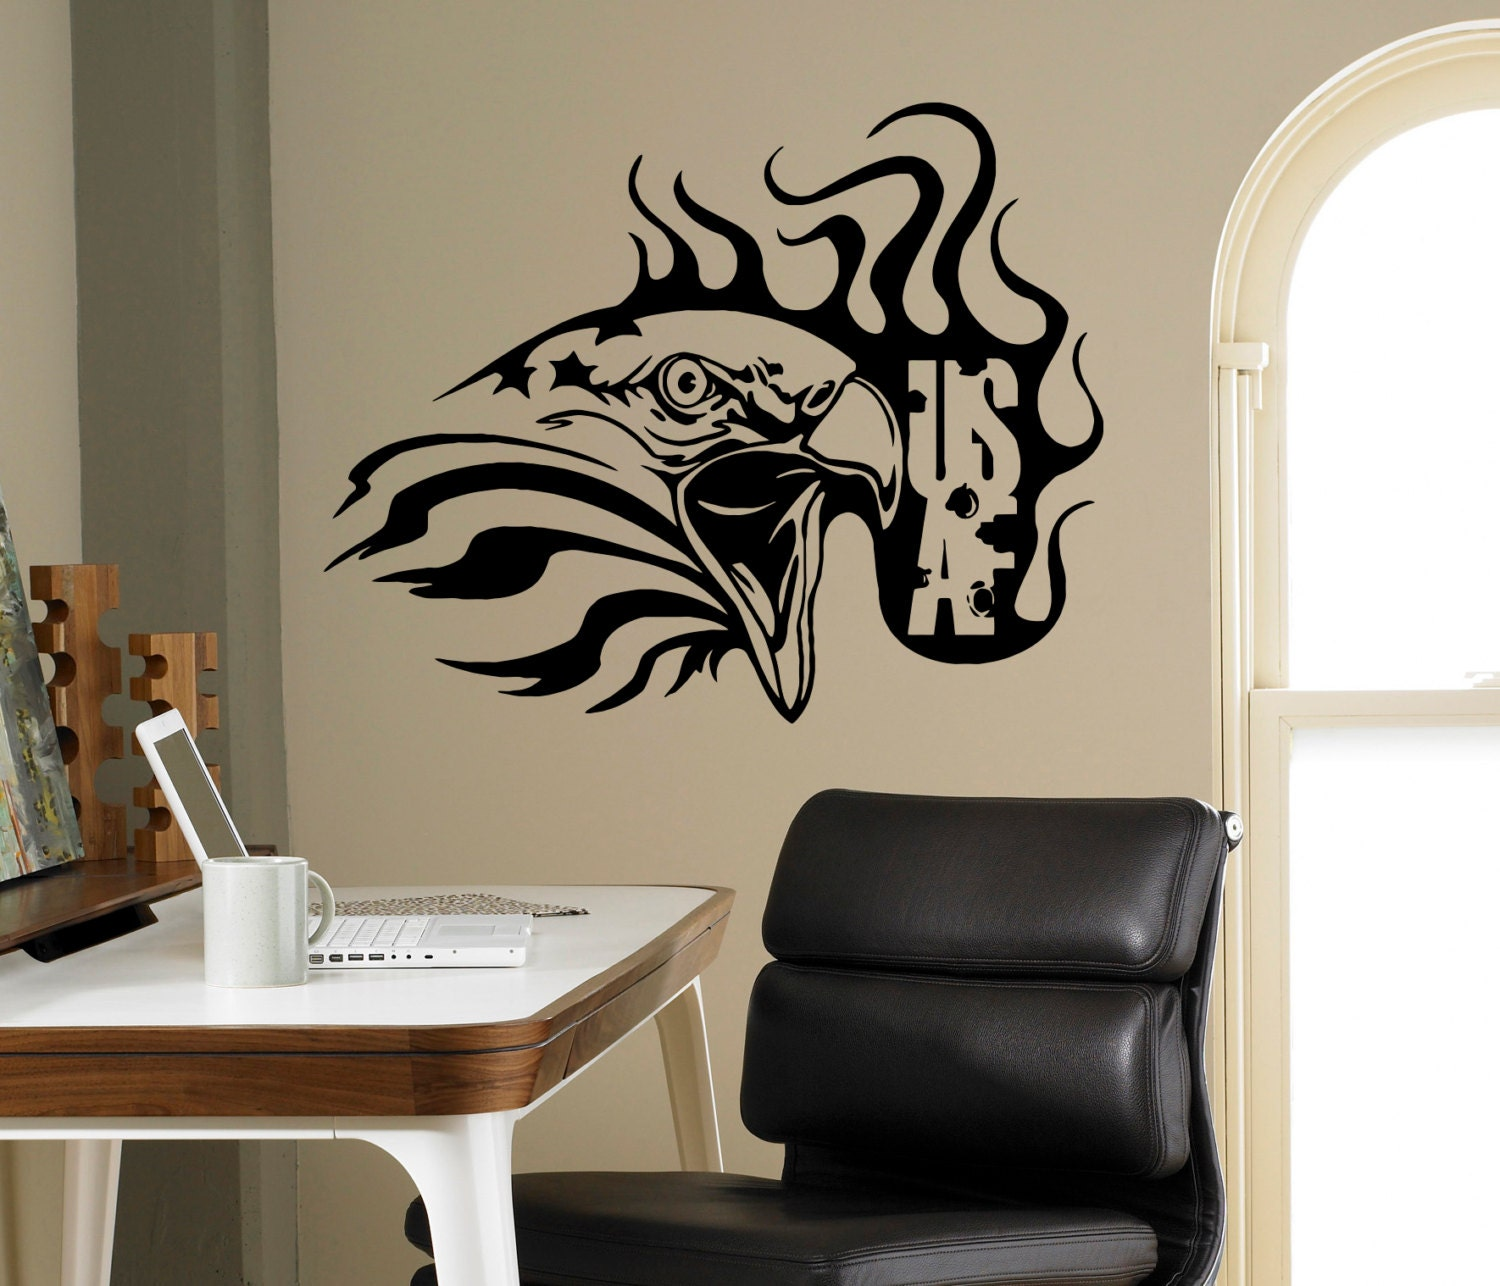 Usaf Wall Decor : Air force wall vinyl decal usaf sticker home interior